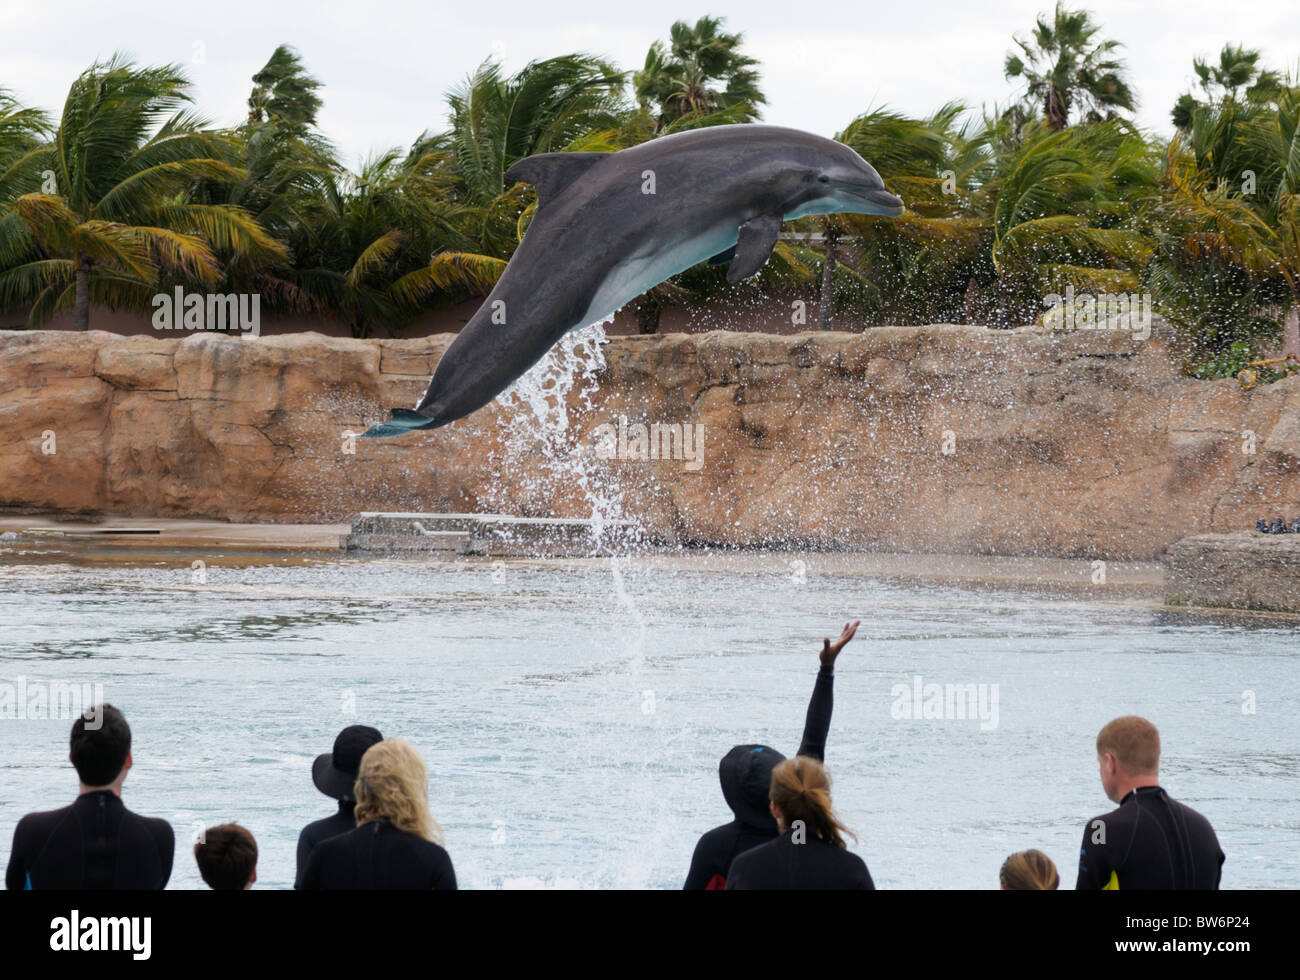 Dolphin leaping out of the water, dolphin interaction, Atlantis resort, Paradise Island, The Bahamas - Stock Image